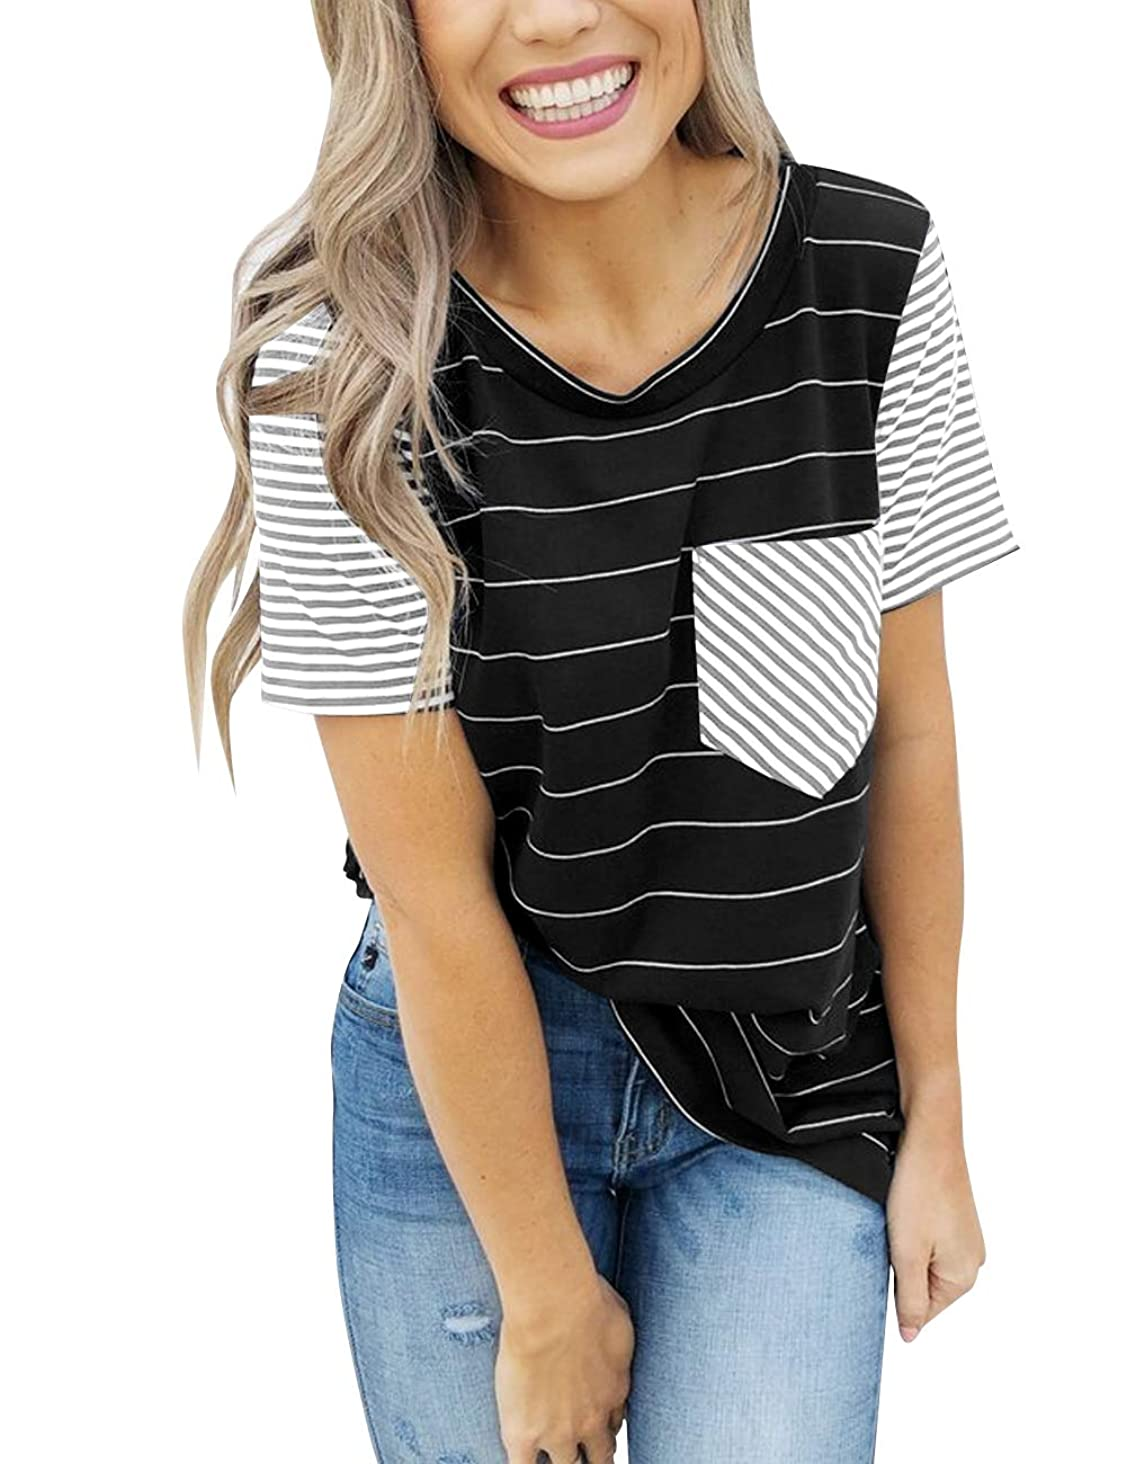 MEROKEETY Women's Summer Striped Short Sleeve Contrast Color Casual T-Shirt Tops with Pocket